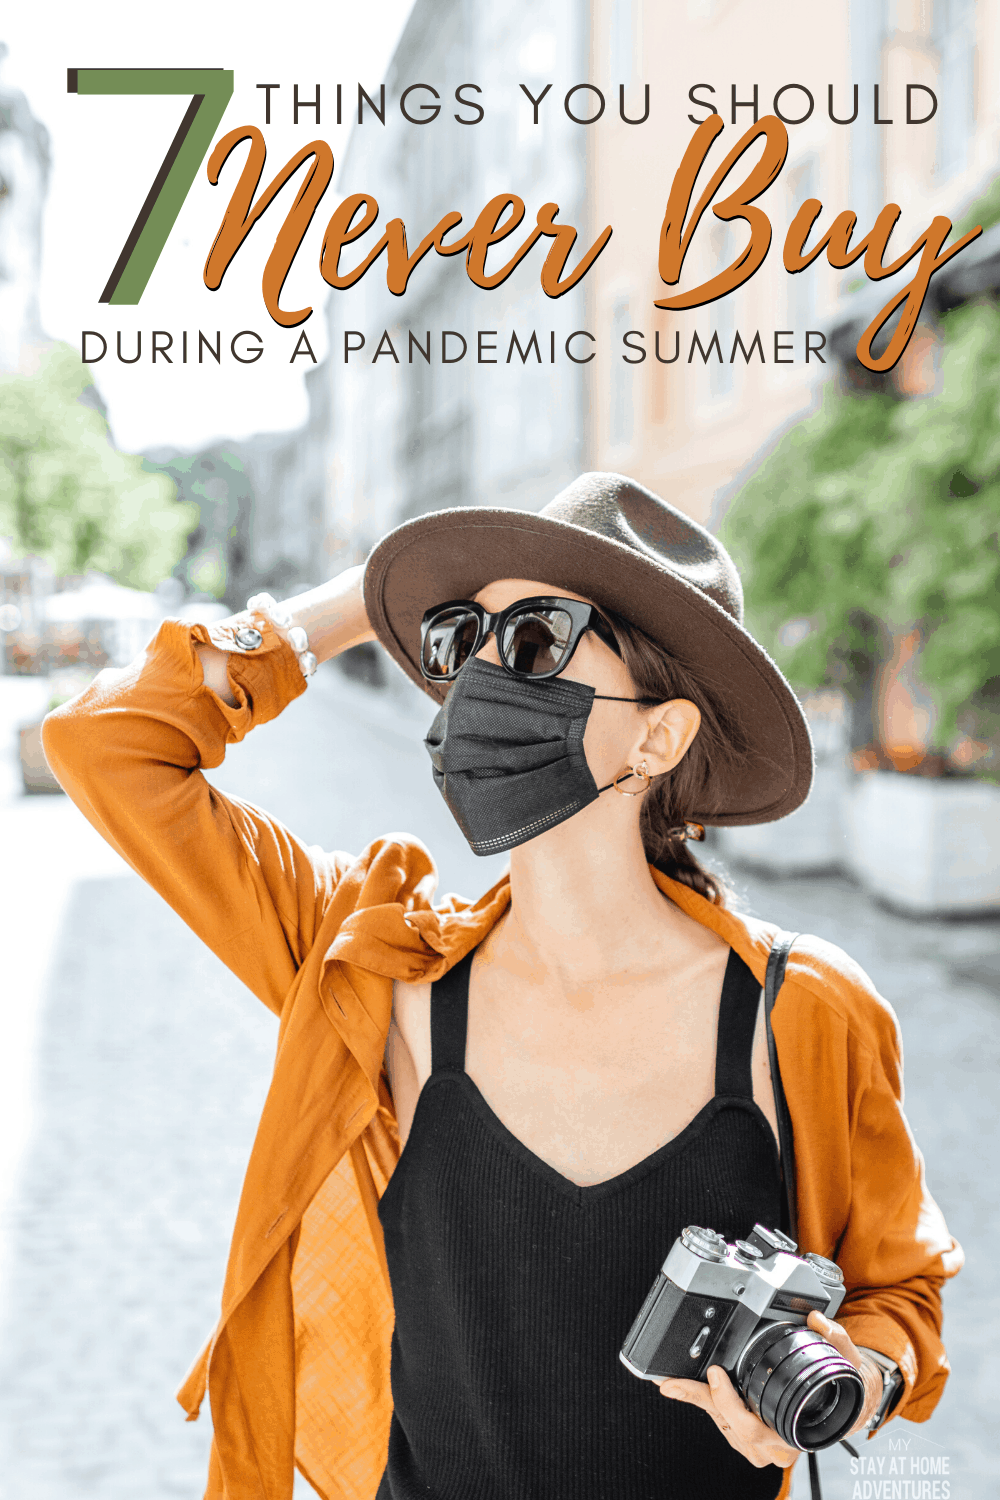 During the 2020 summer and due to the current global event, there are things you should not buy this season. Learn what they are and the reasons behind it. via @mystayathome